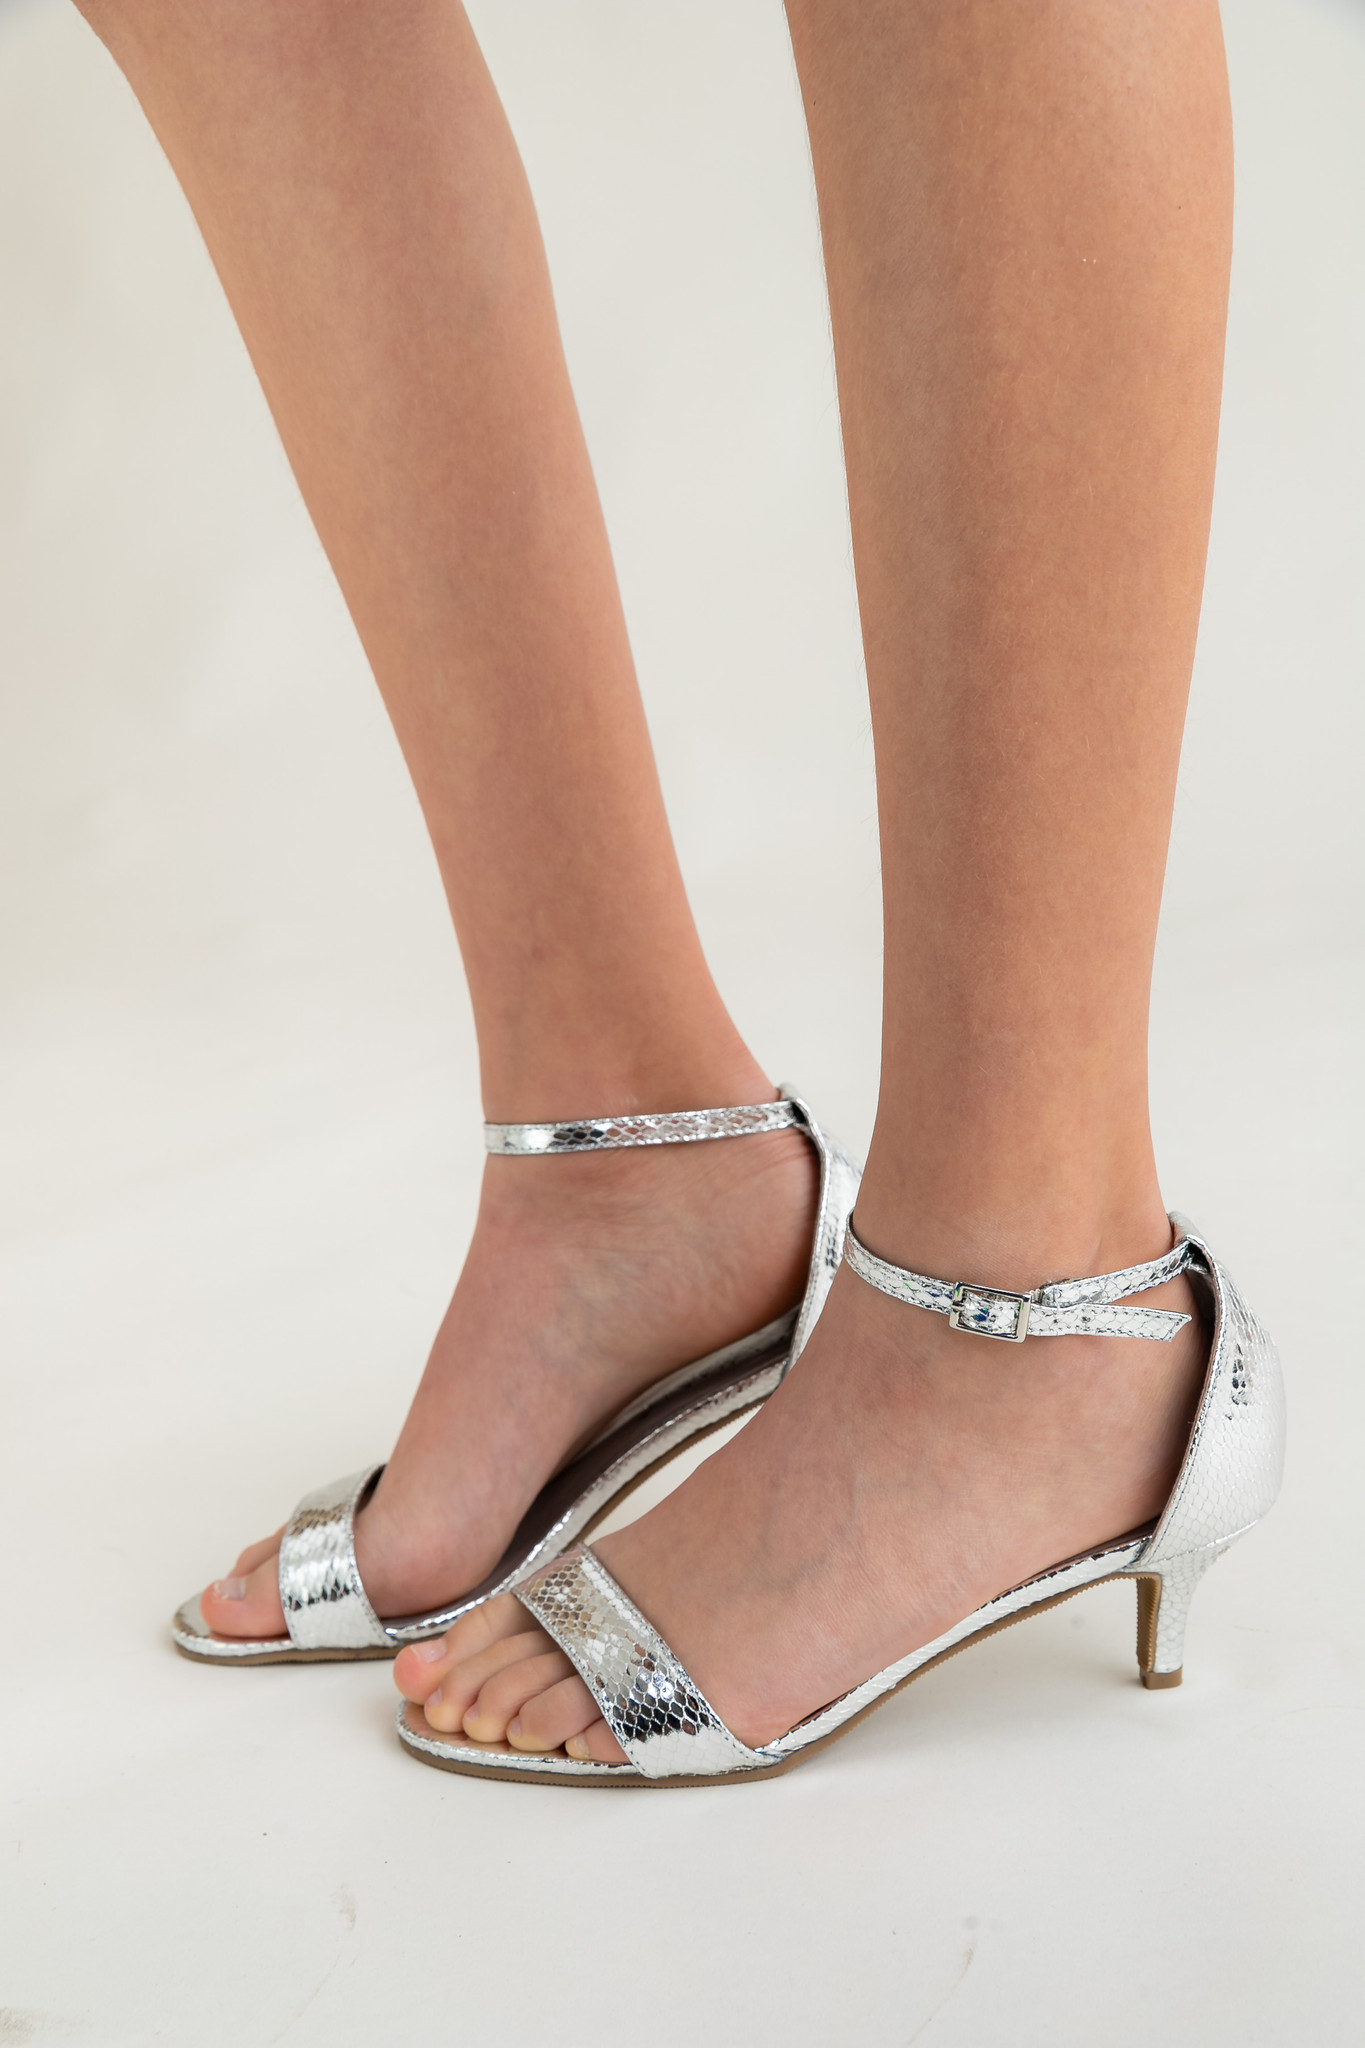 Tween Girls Silver Metallic Open Toe Texture Kitten Heel